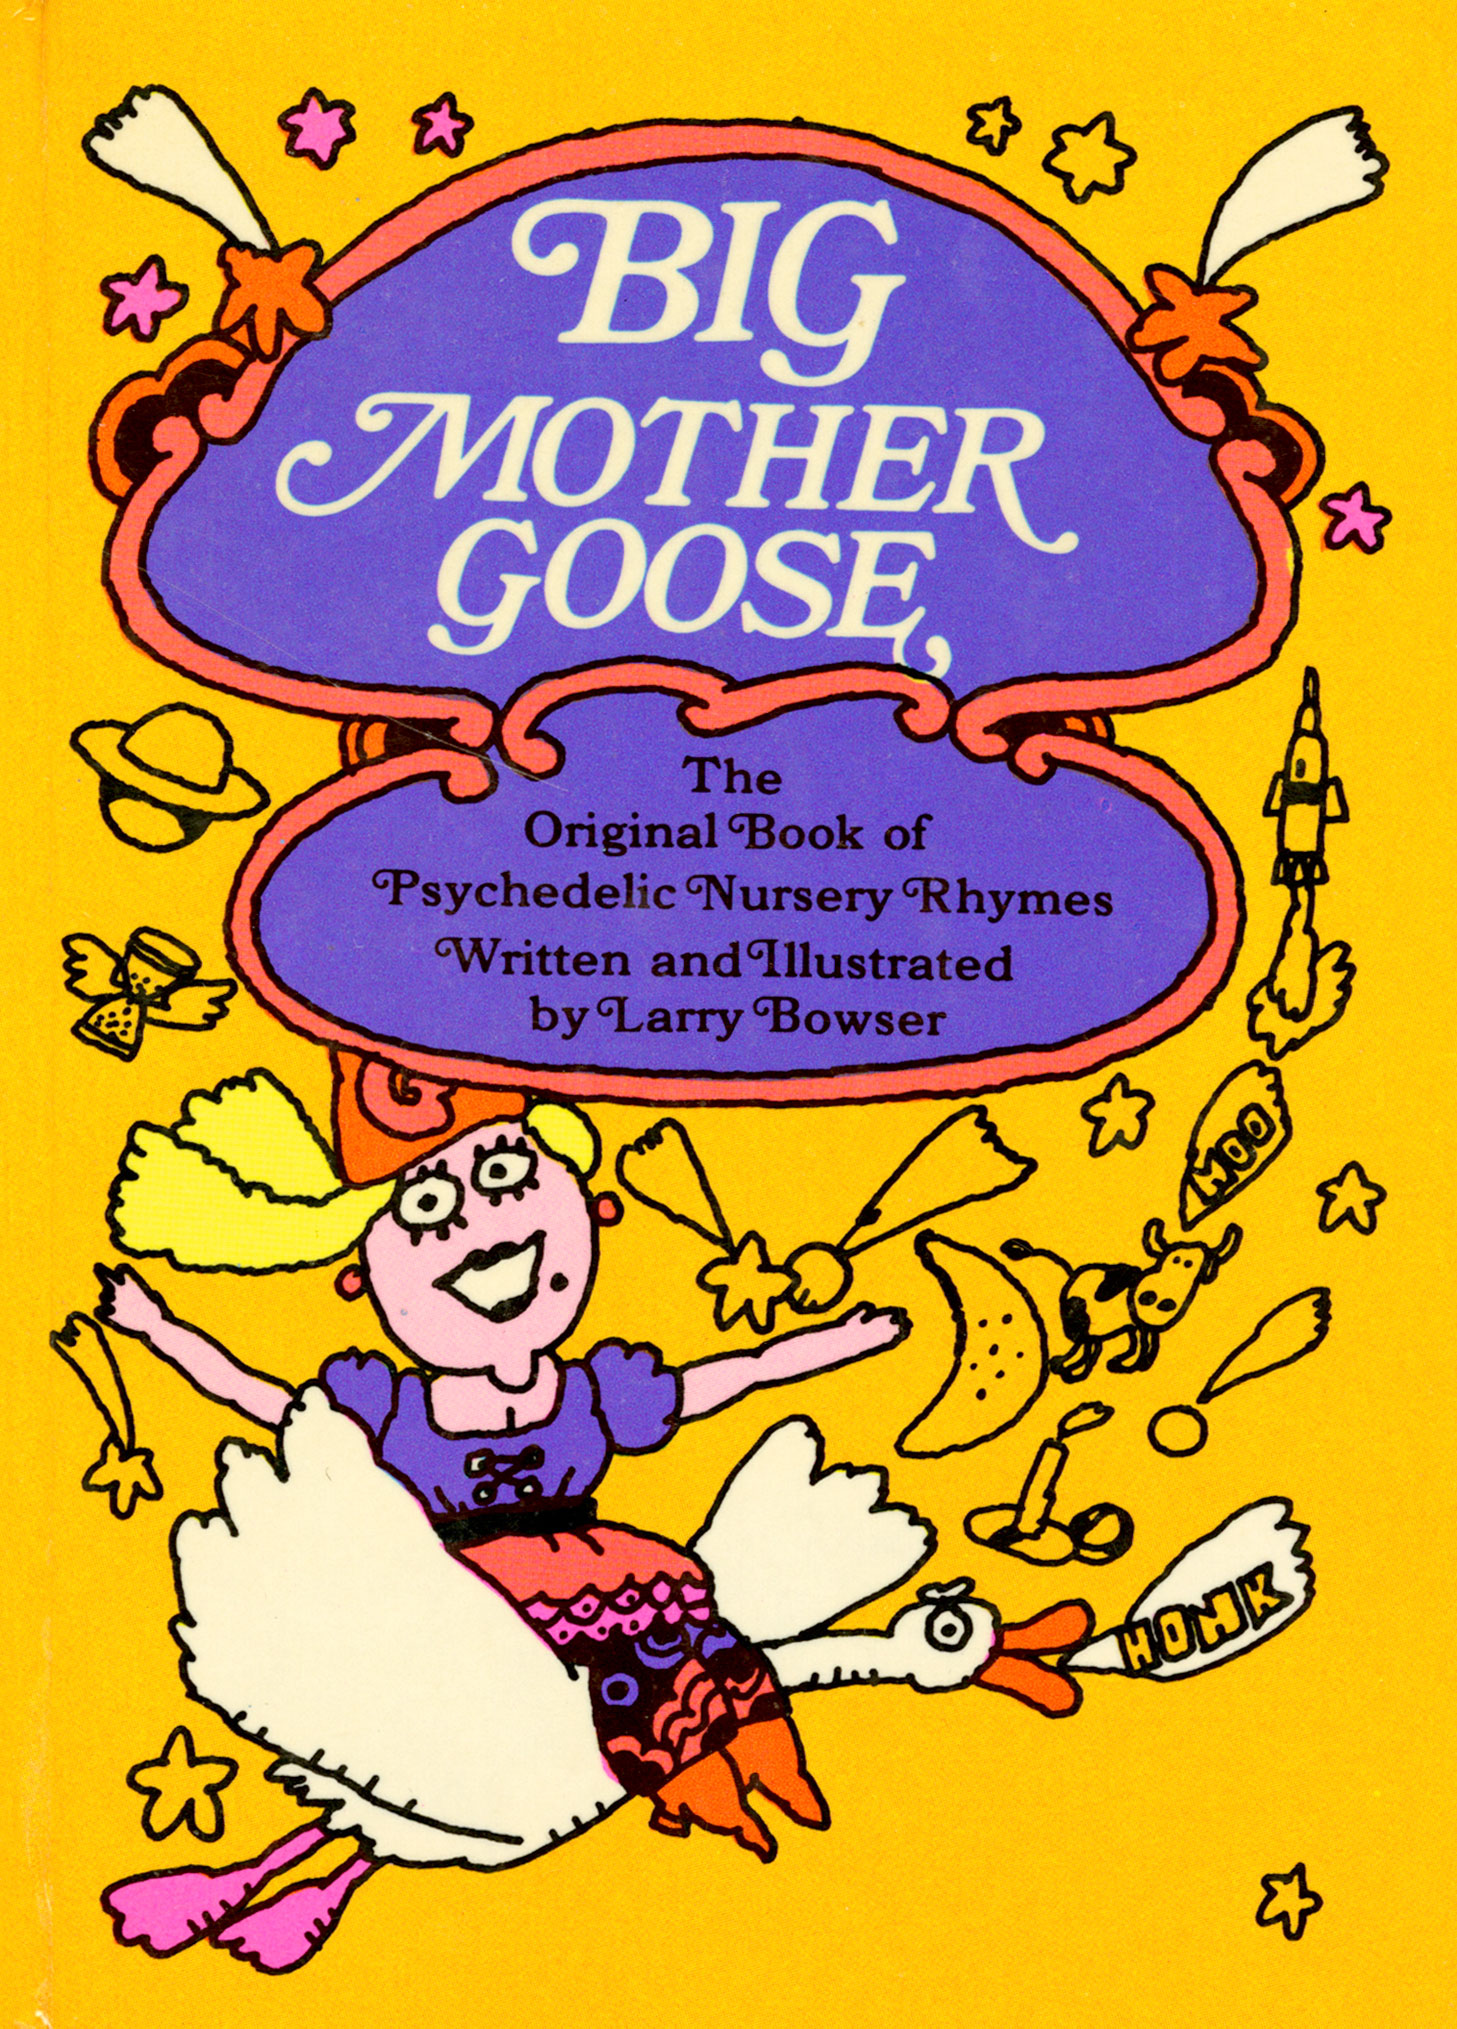 Big-Mother-Goose-c.jpg